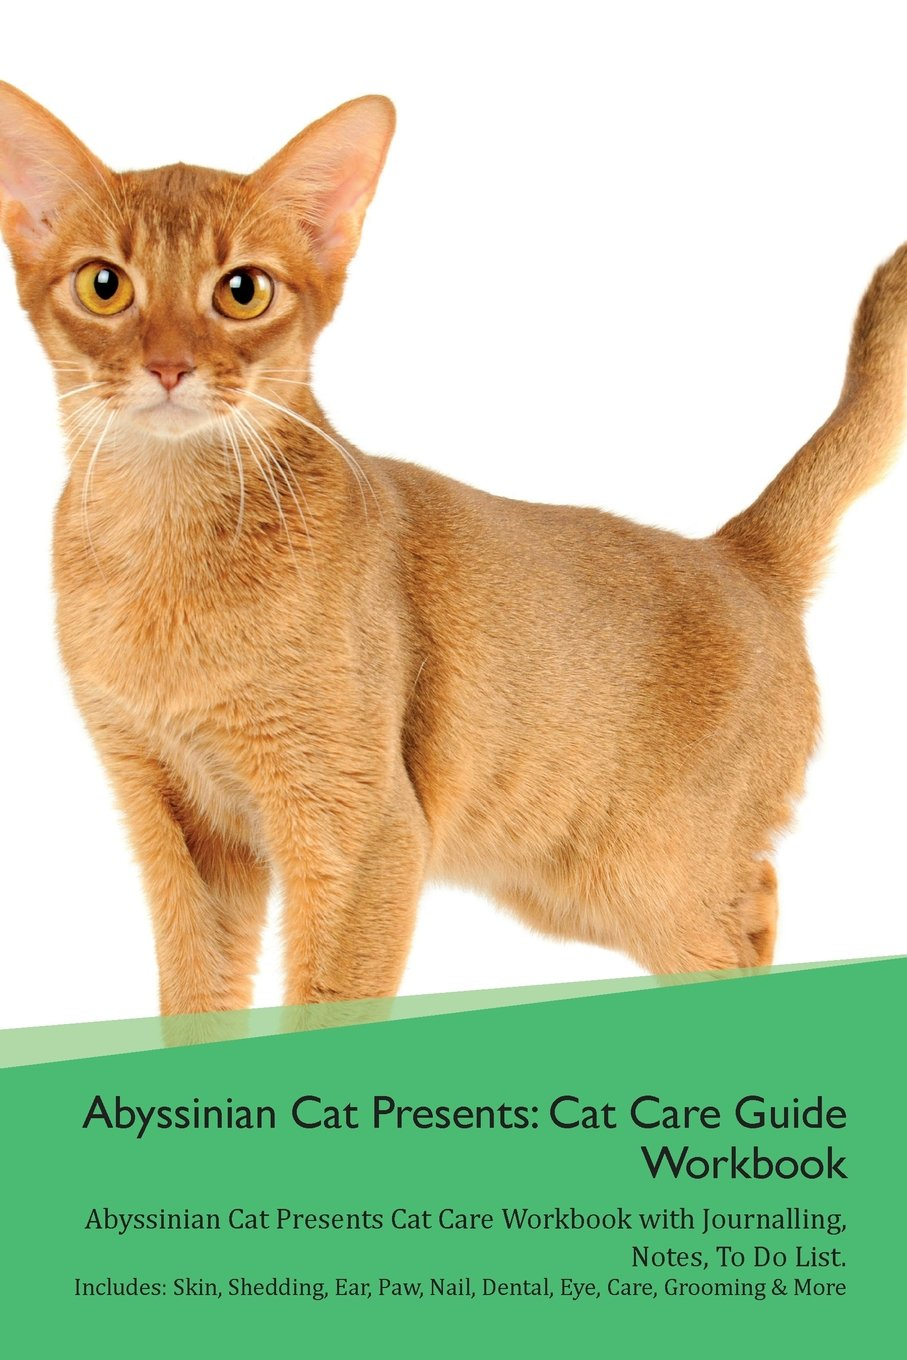 Abyssinian Cat Presents: Cat Care Guide Workbook Abyssinian Cat Presents Cat Care Workbook with Journalling, Notes, To Do List. Includes: Skin, ... Paw, Nail, Dental, Eye, Care, Grooming & More pdf